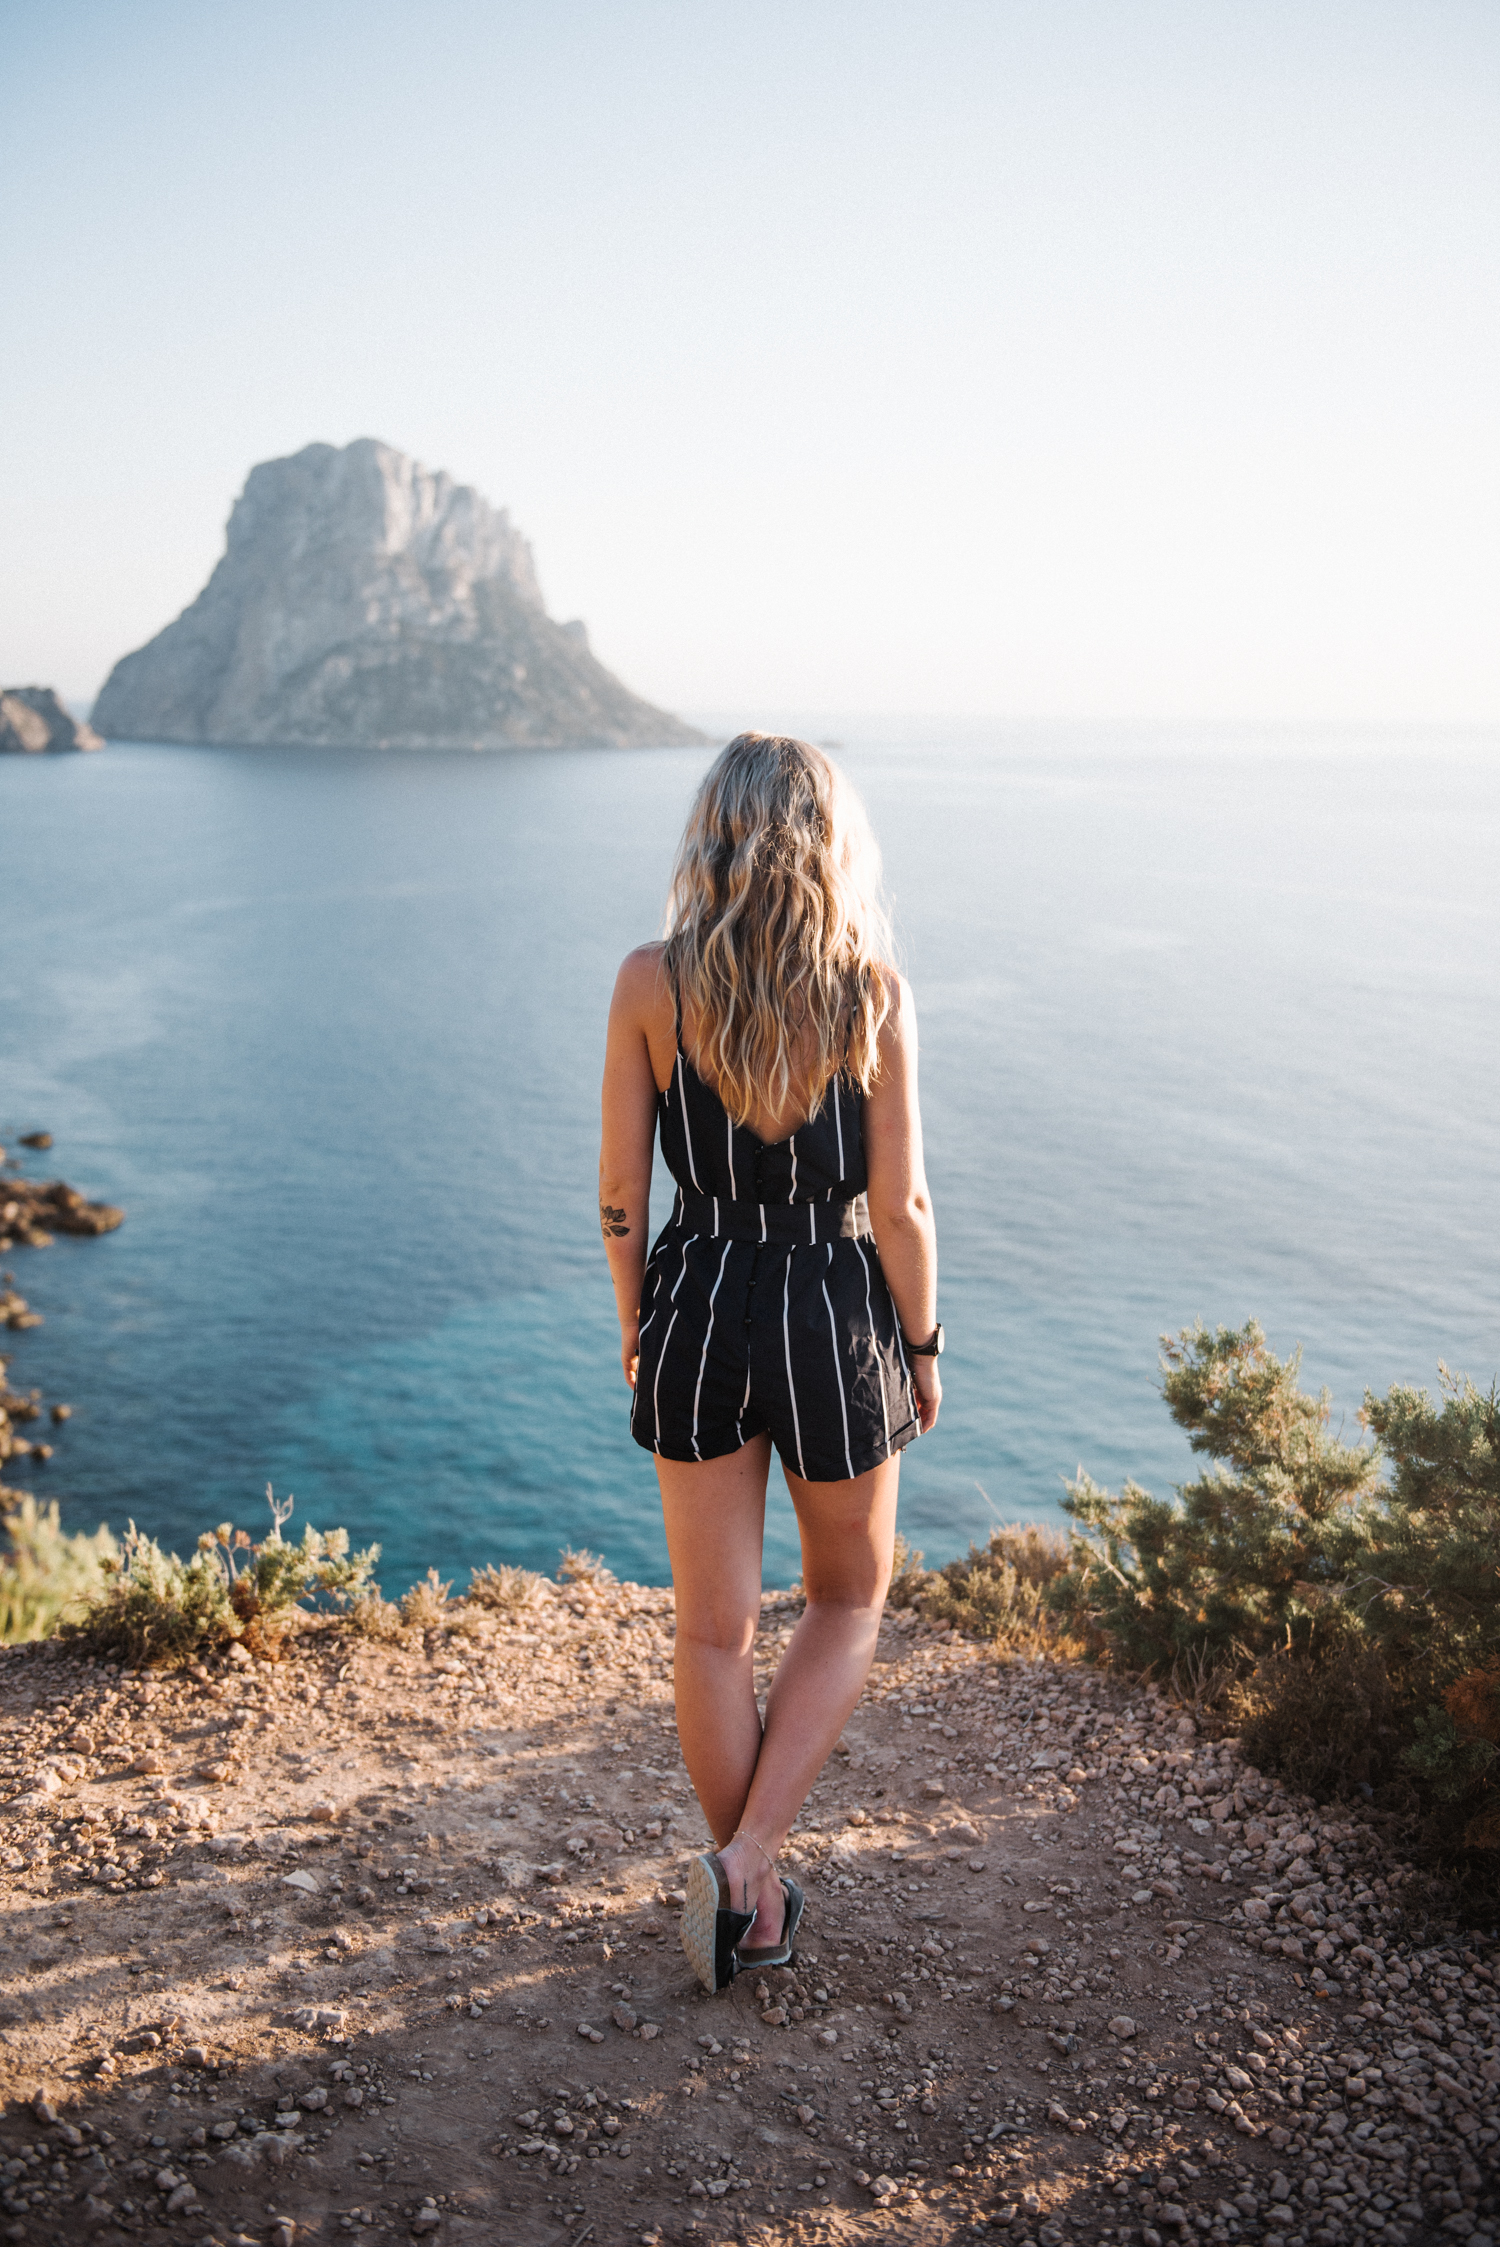 A Magical Girls Holiday In Ibiza // www.oliviabossert.com // lifestyle photography, cornwall, ibiza, girls holiday, vacation, sunset photos, spain, summer 2018,